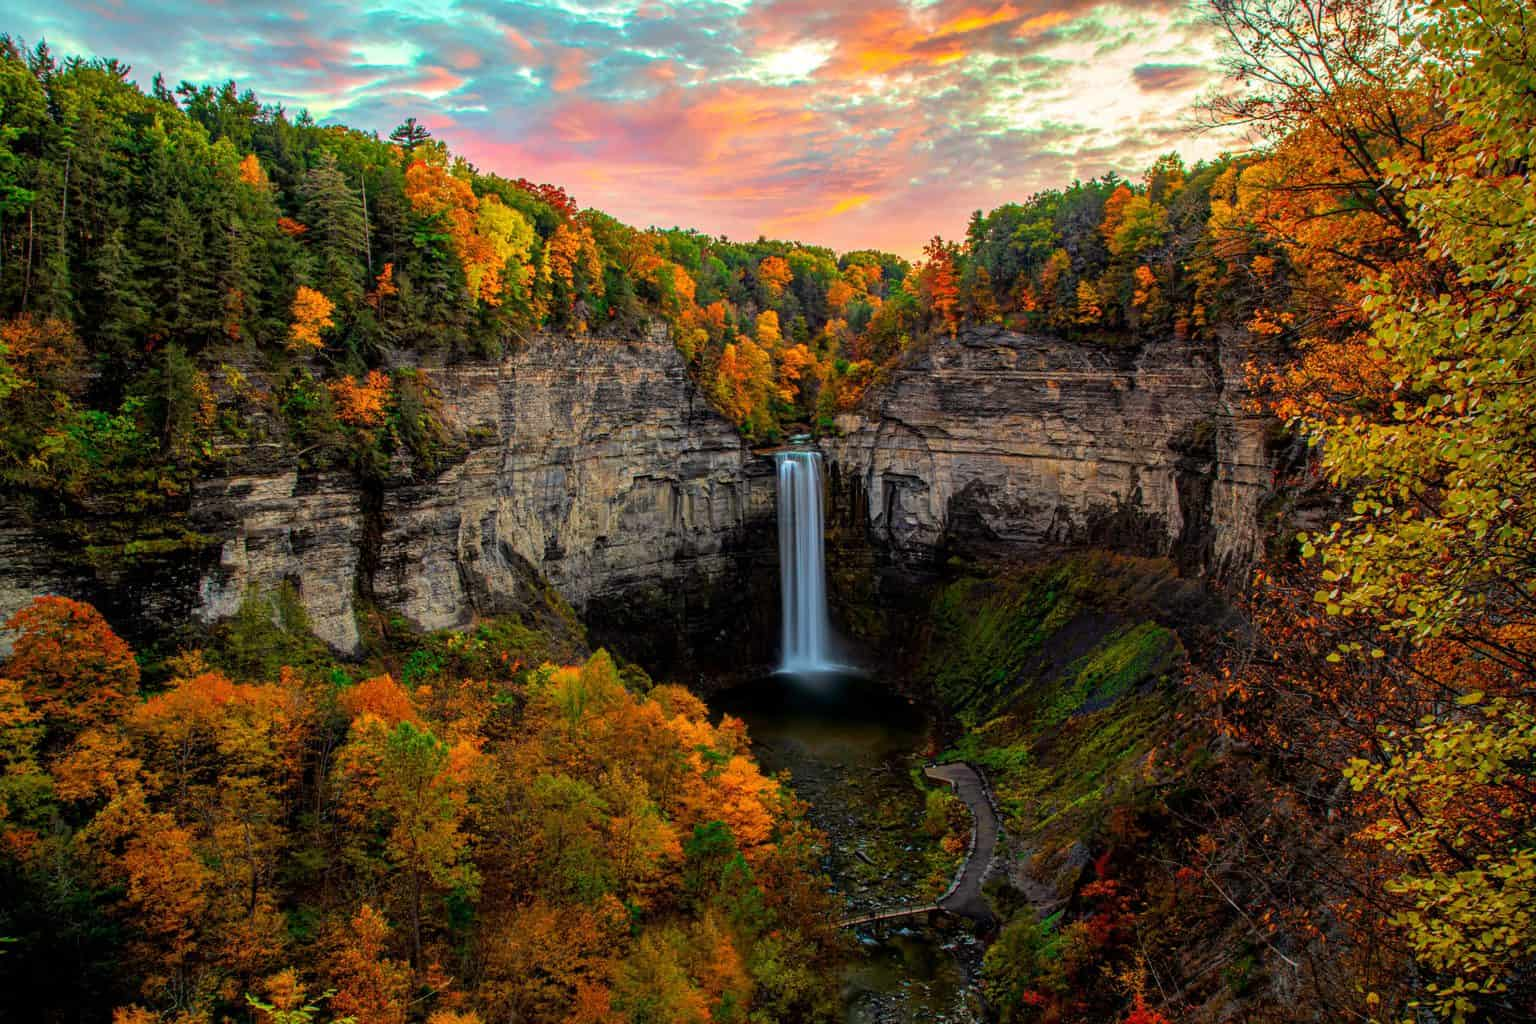 Fall foliage surrounds the beautiful, Taughannock Falls in Ulysses, NY.